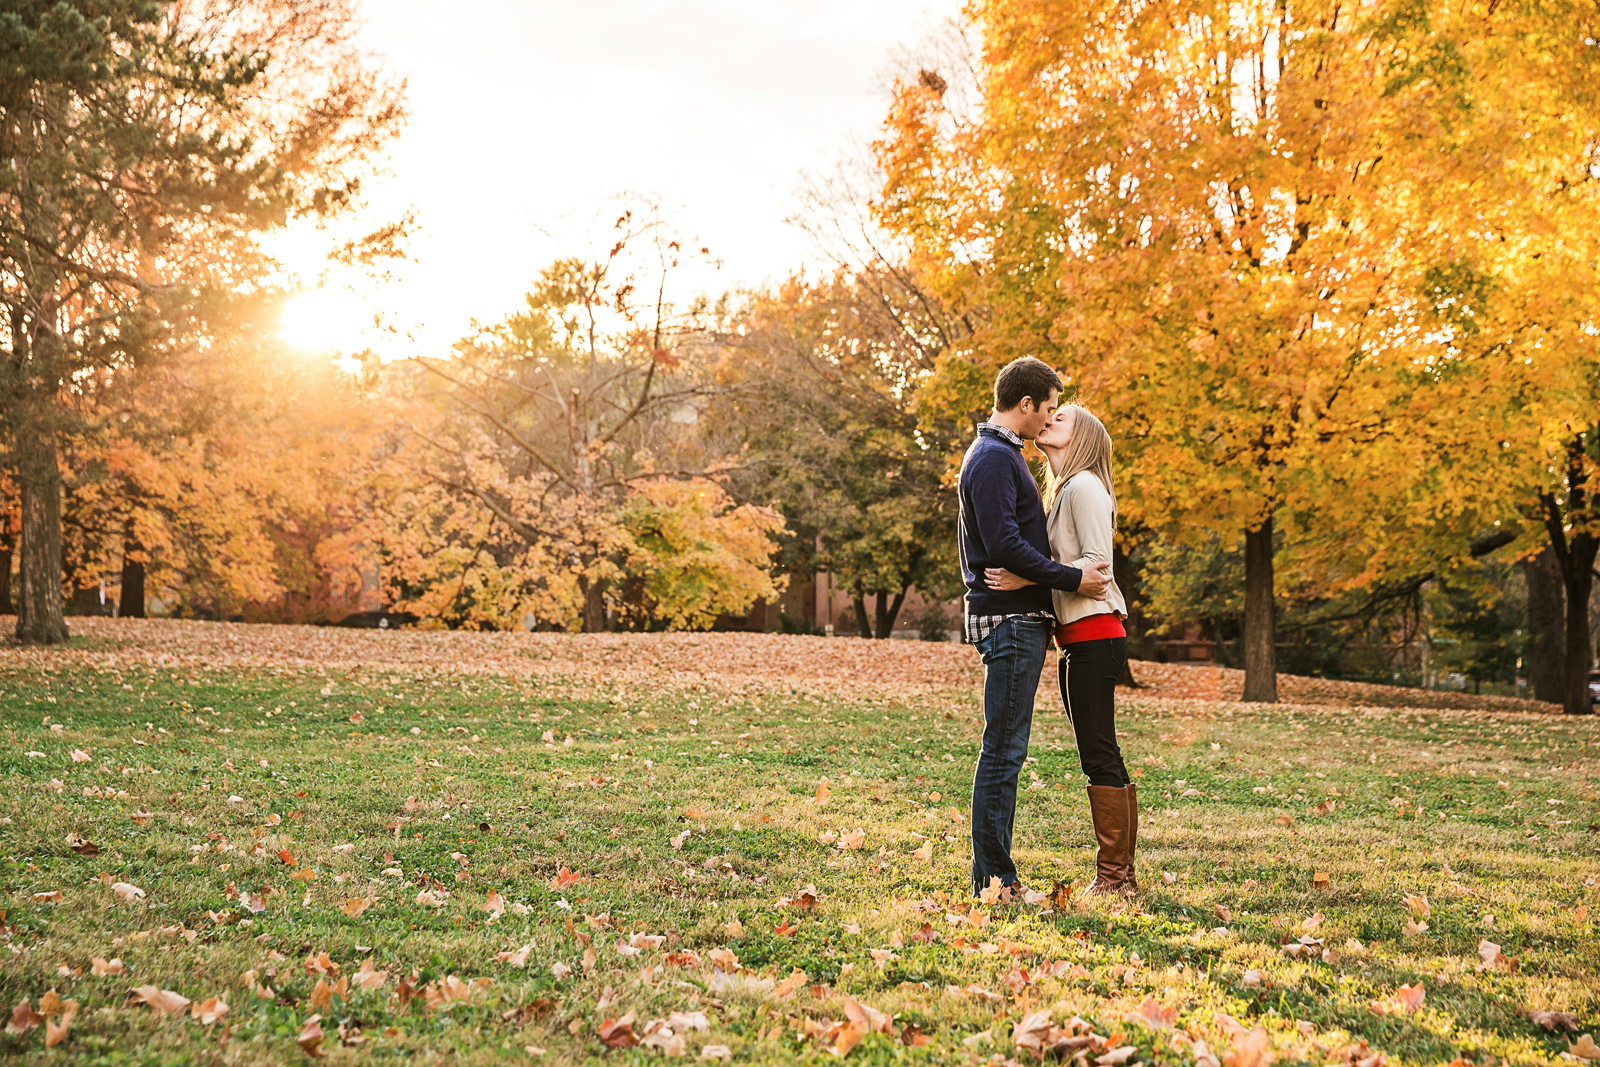 Oldani Photography St Louis Lafayette Square Park Engagement_20141102_171445-2.jpg